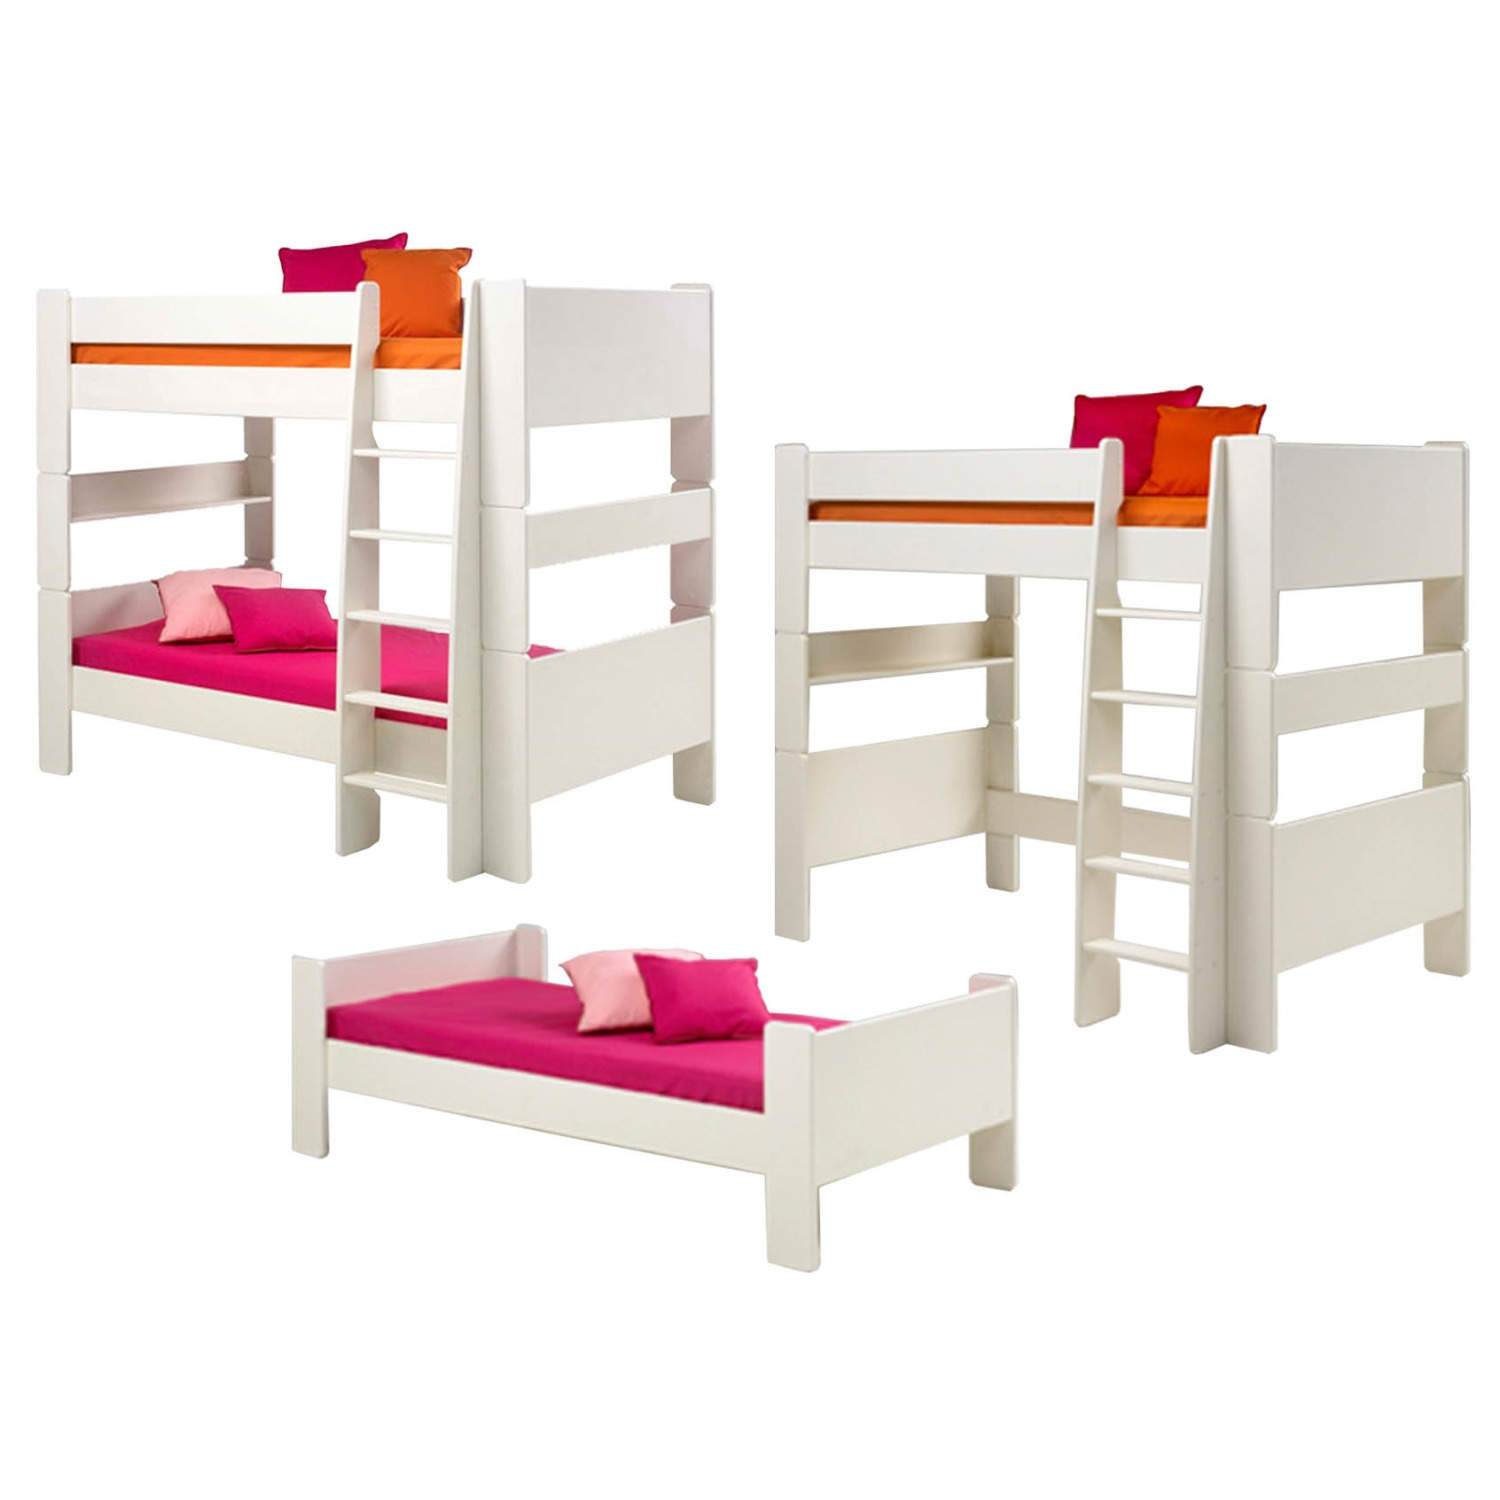 steens for kids extension kit bunk to single and high sleeper in white furniture123. Black Bedroom Furniture Sets. Home Design Ideas